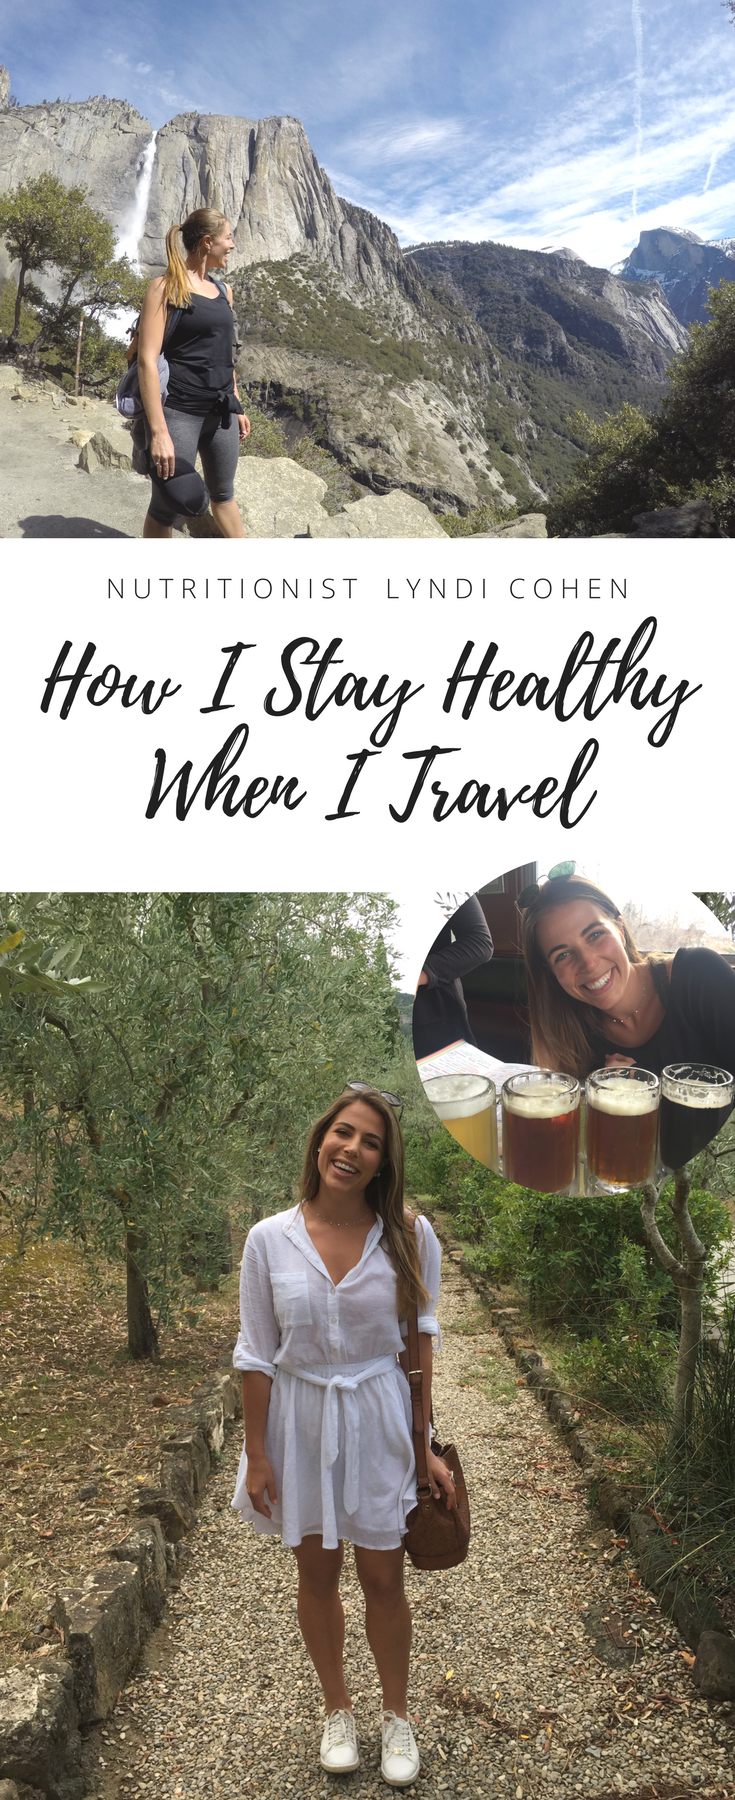 How a nutritionist stays healthy when travelling - Lyndi Cohen